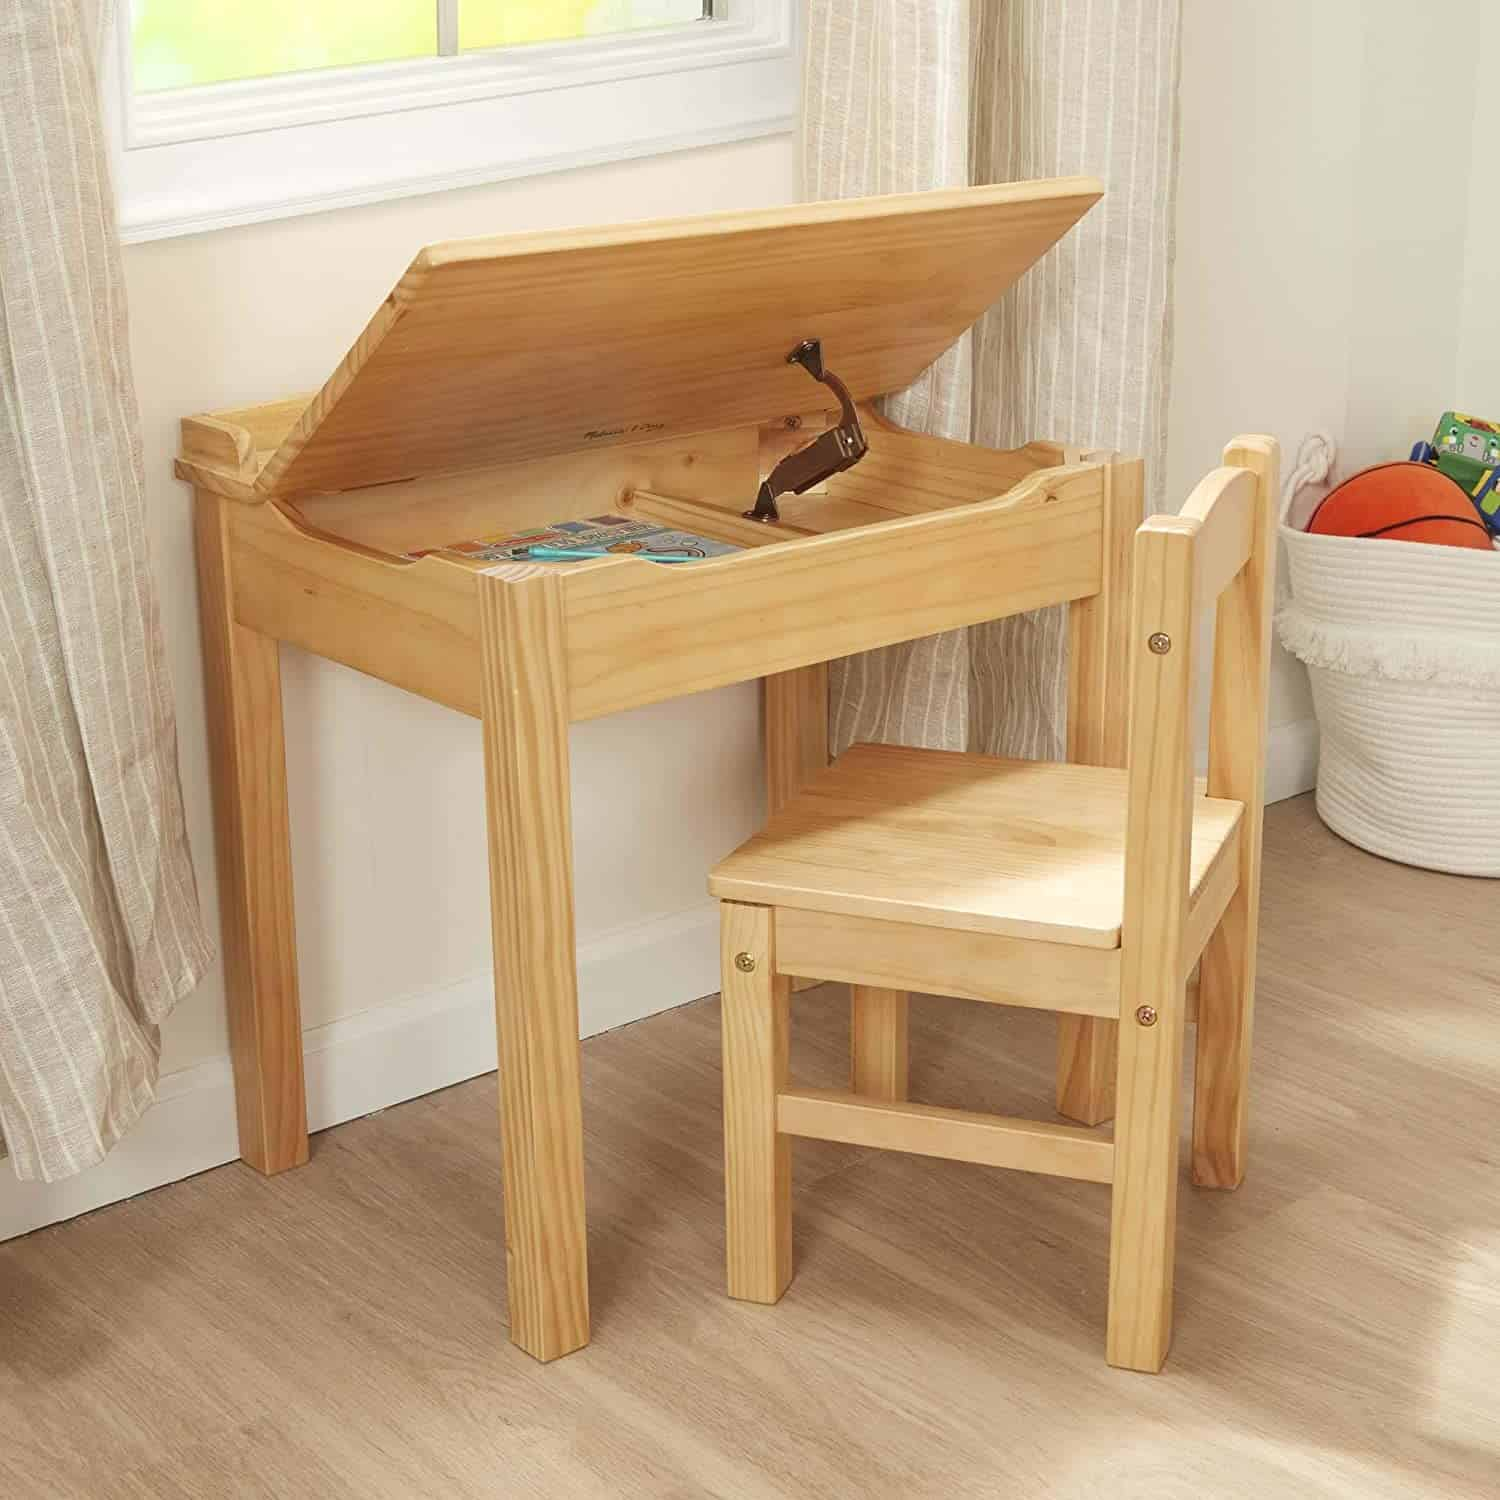 Best toy cabinet desk with drawers: Melissa & Doug Lift-Top table